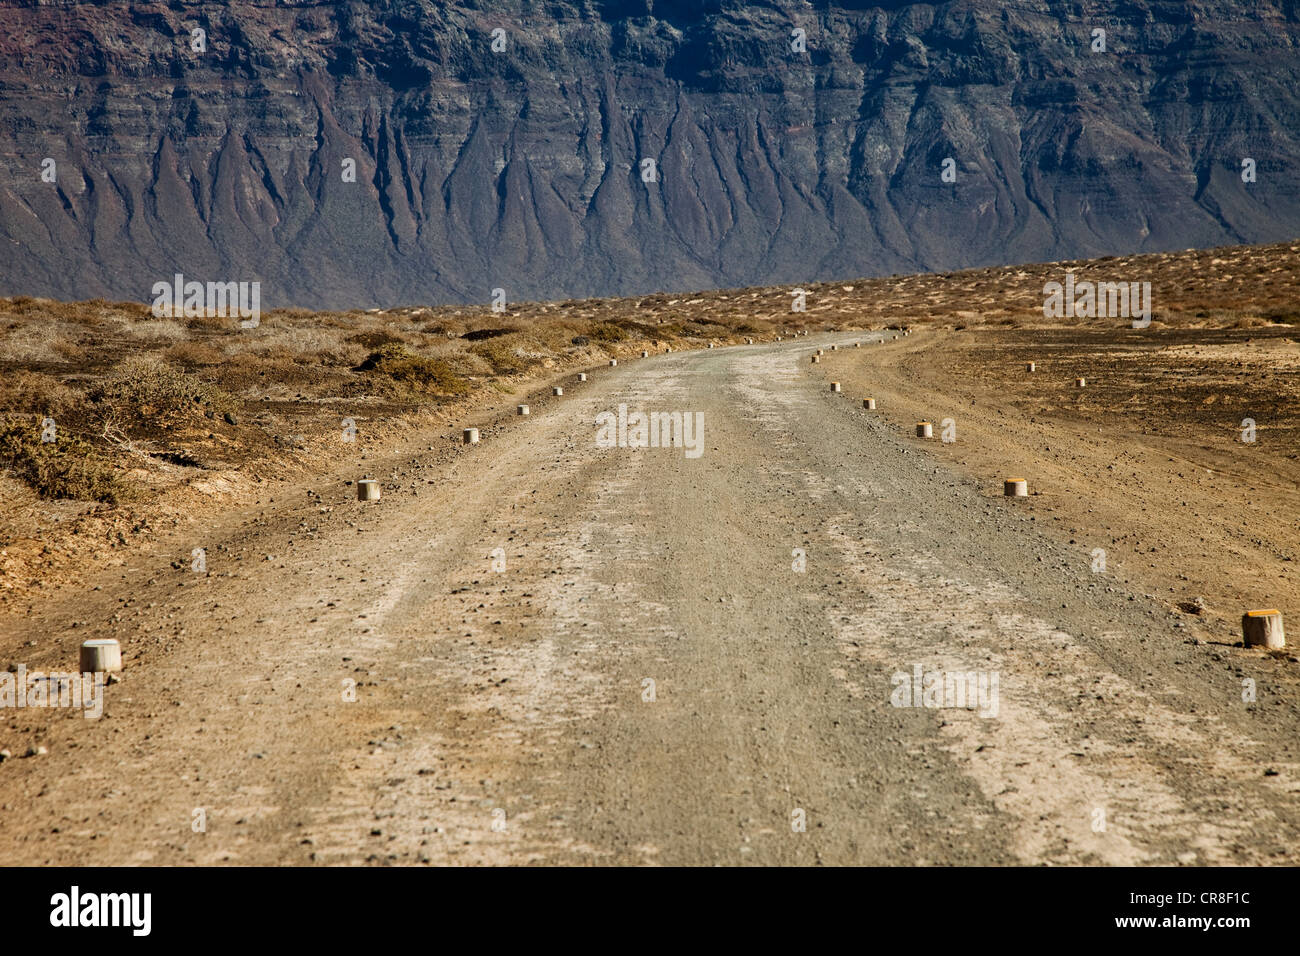 Dirt road, La Gracioca, Lanzarote, Spain - Stock Image